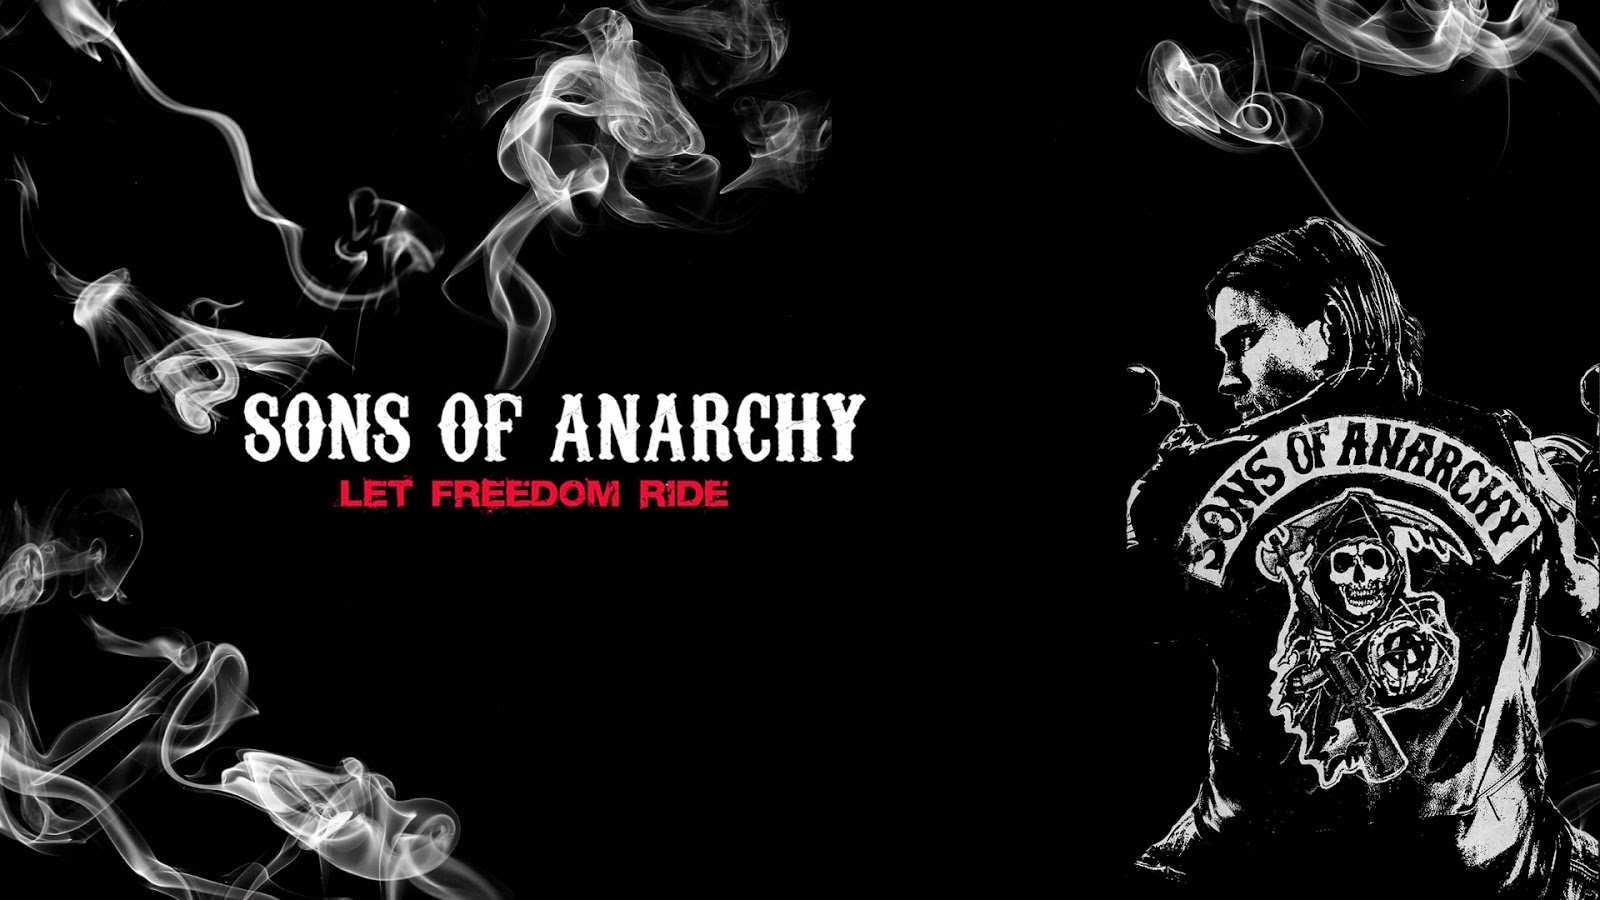 Sons of Anarchy – Series Review – The Best Moments: Opie's Sacrifice, Gemma's Confession, Venus Van Dam & Much More